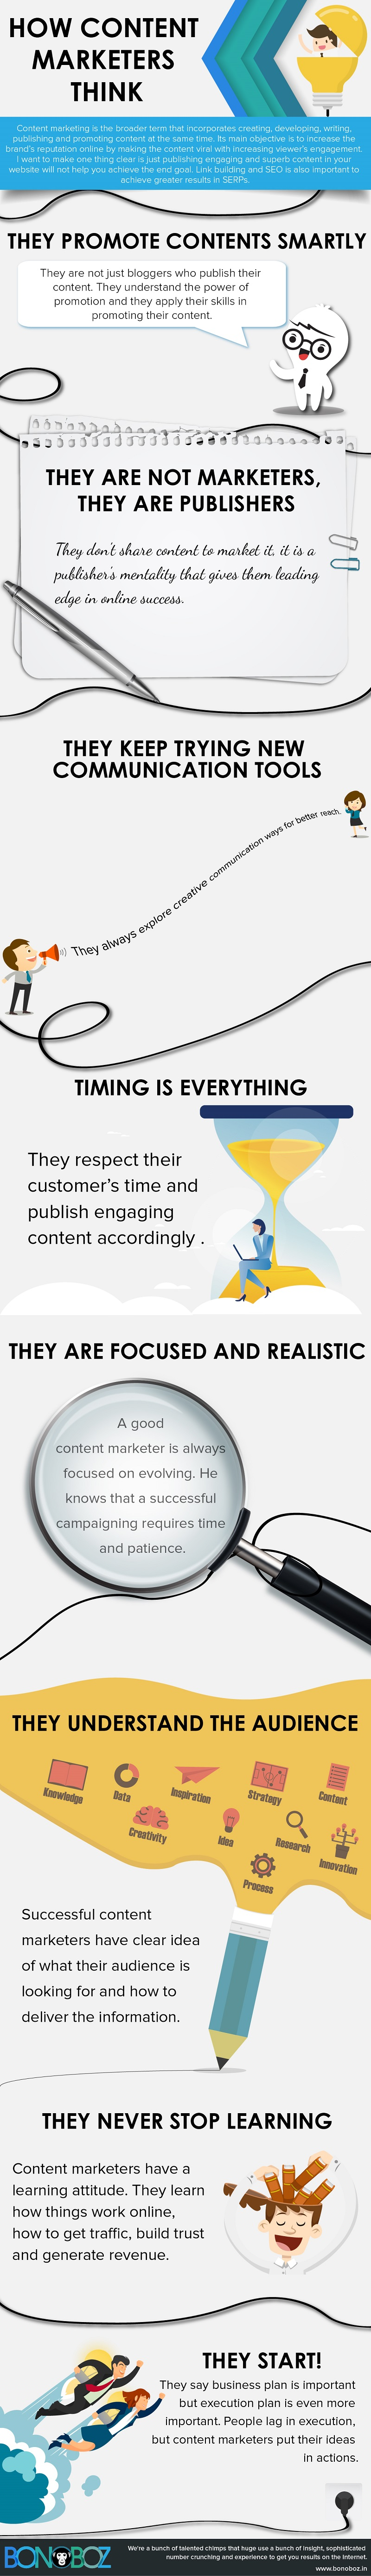 how content marketers think